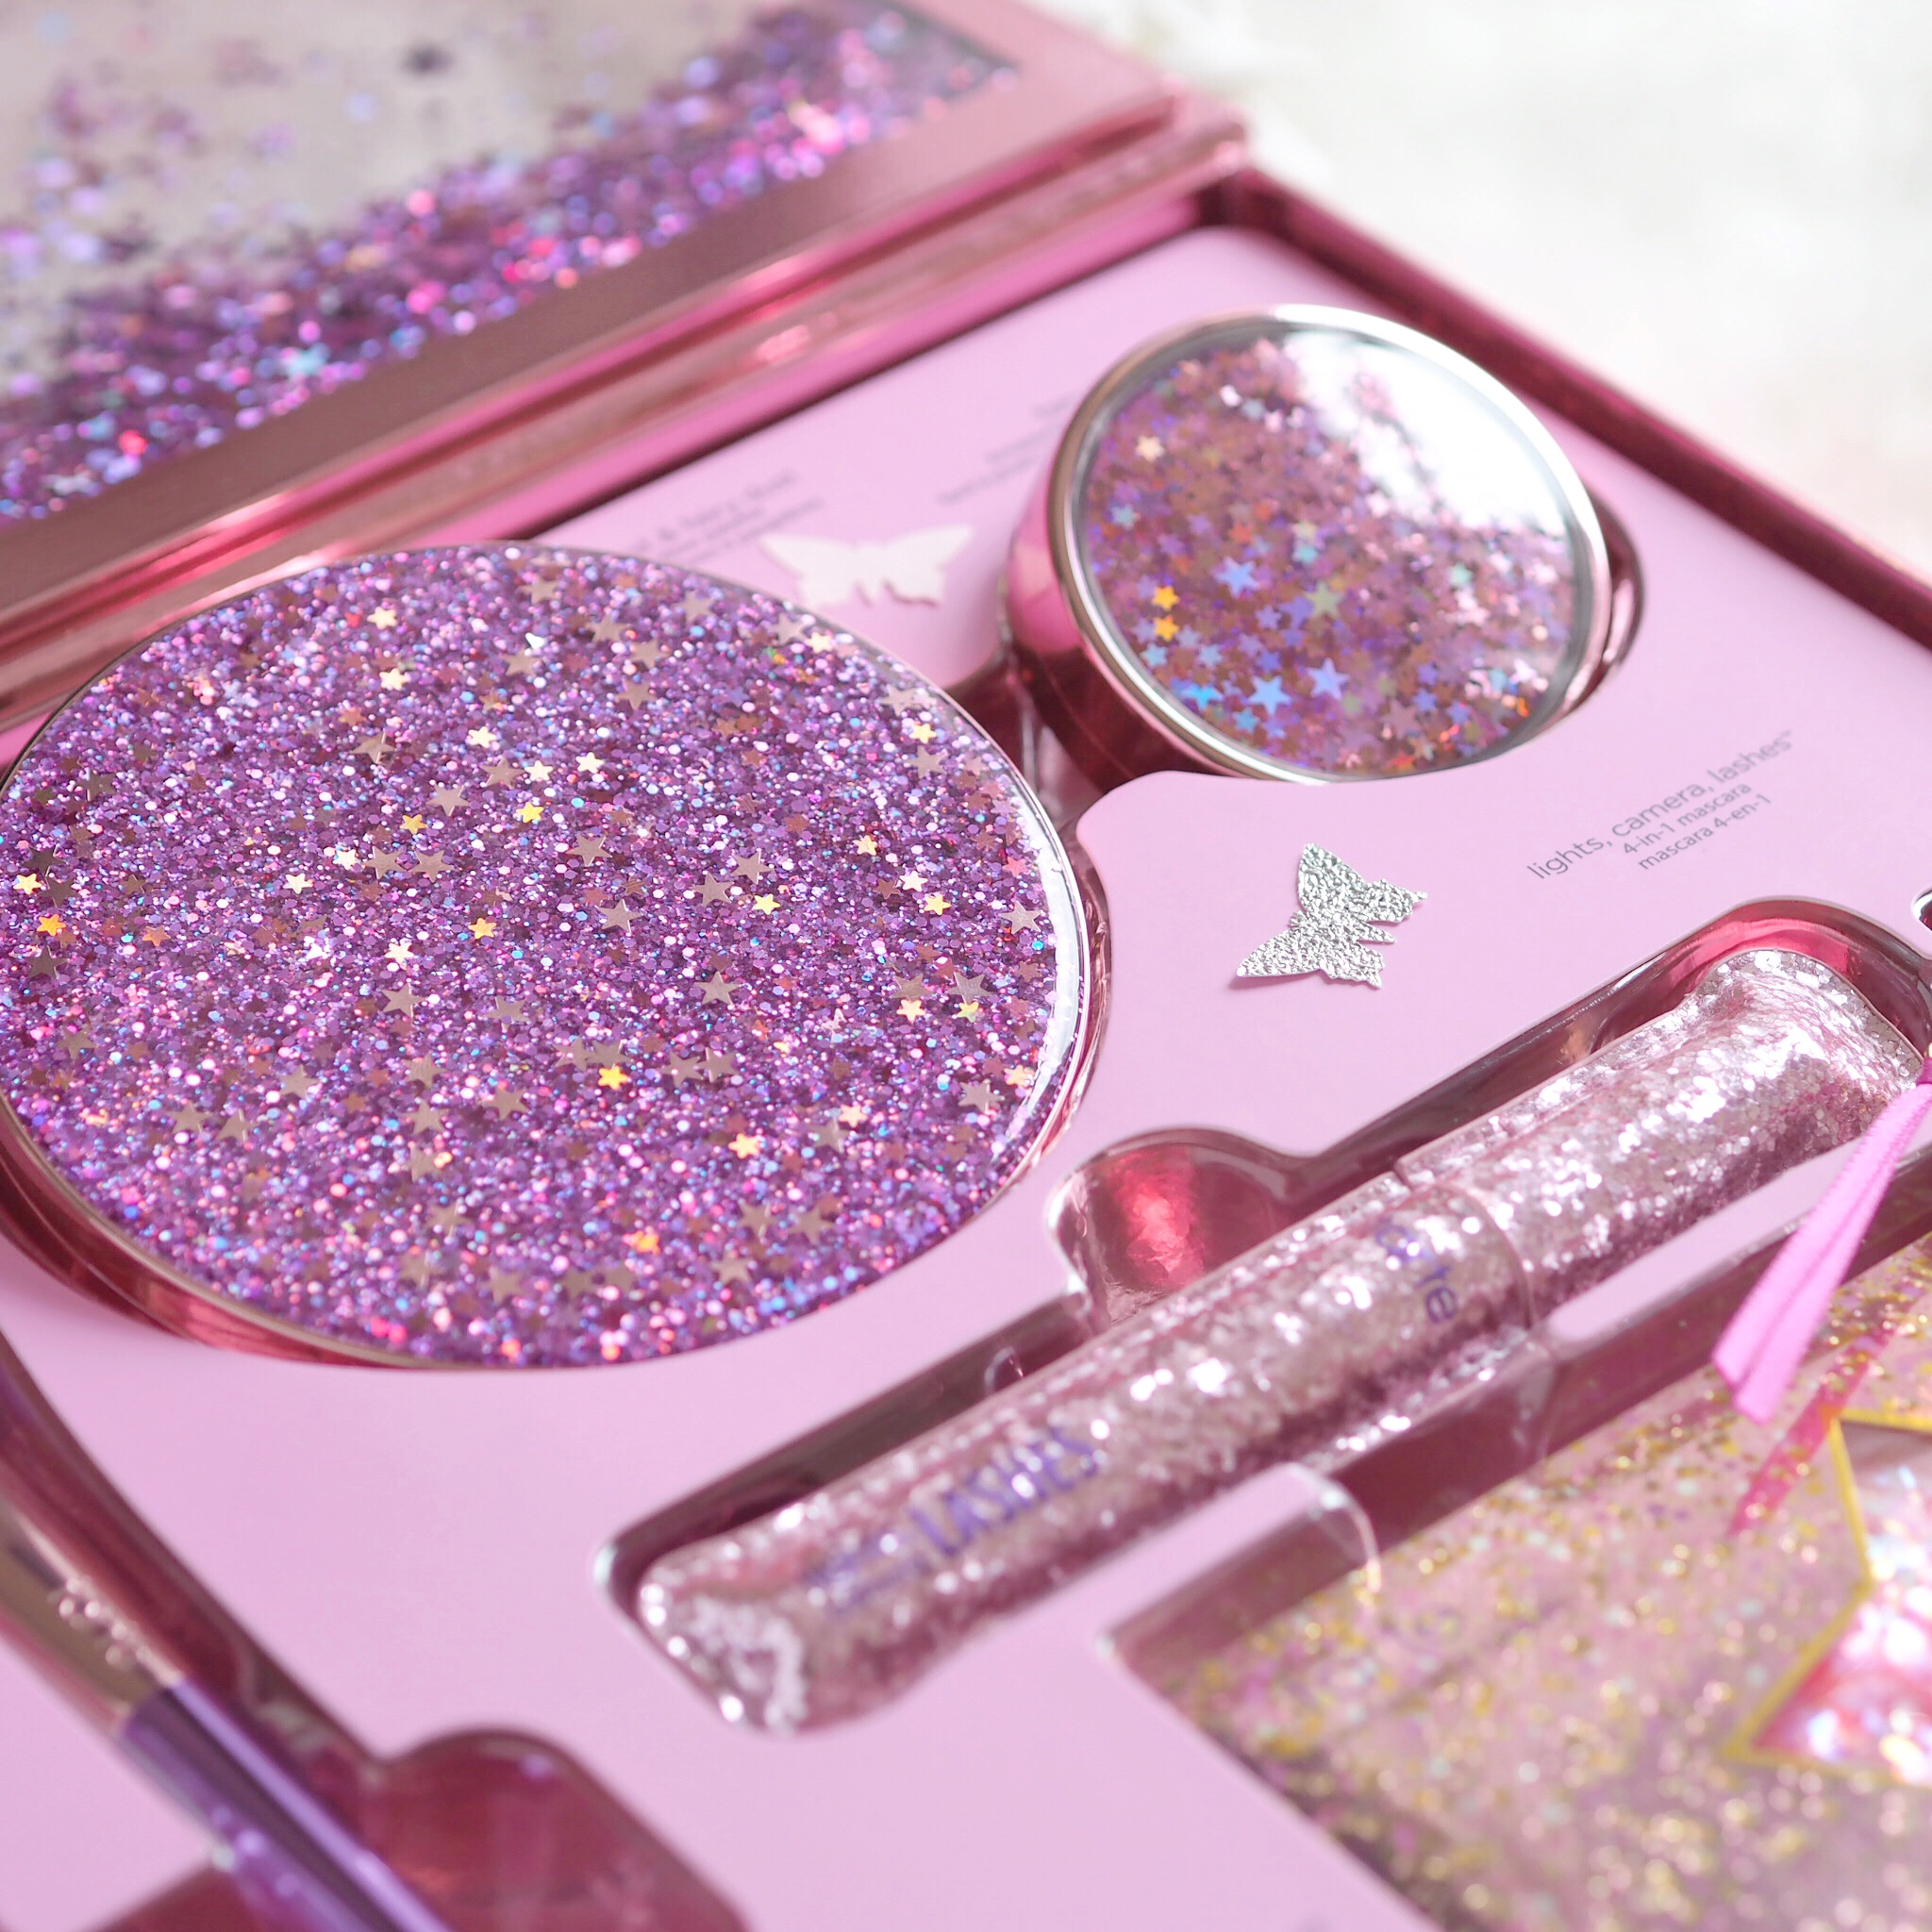 Tarte Love, Trust & Fairy Dust Vault